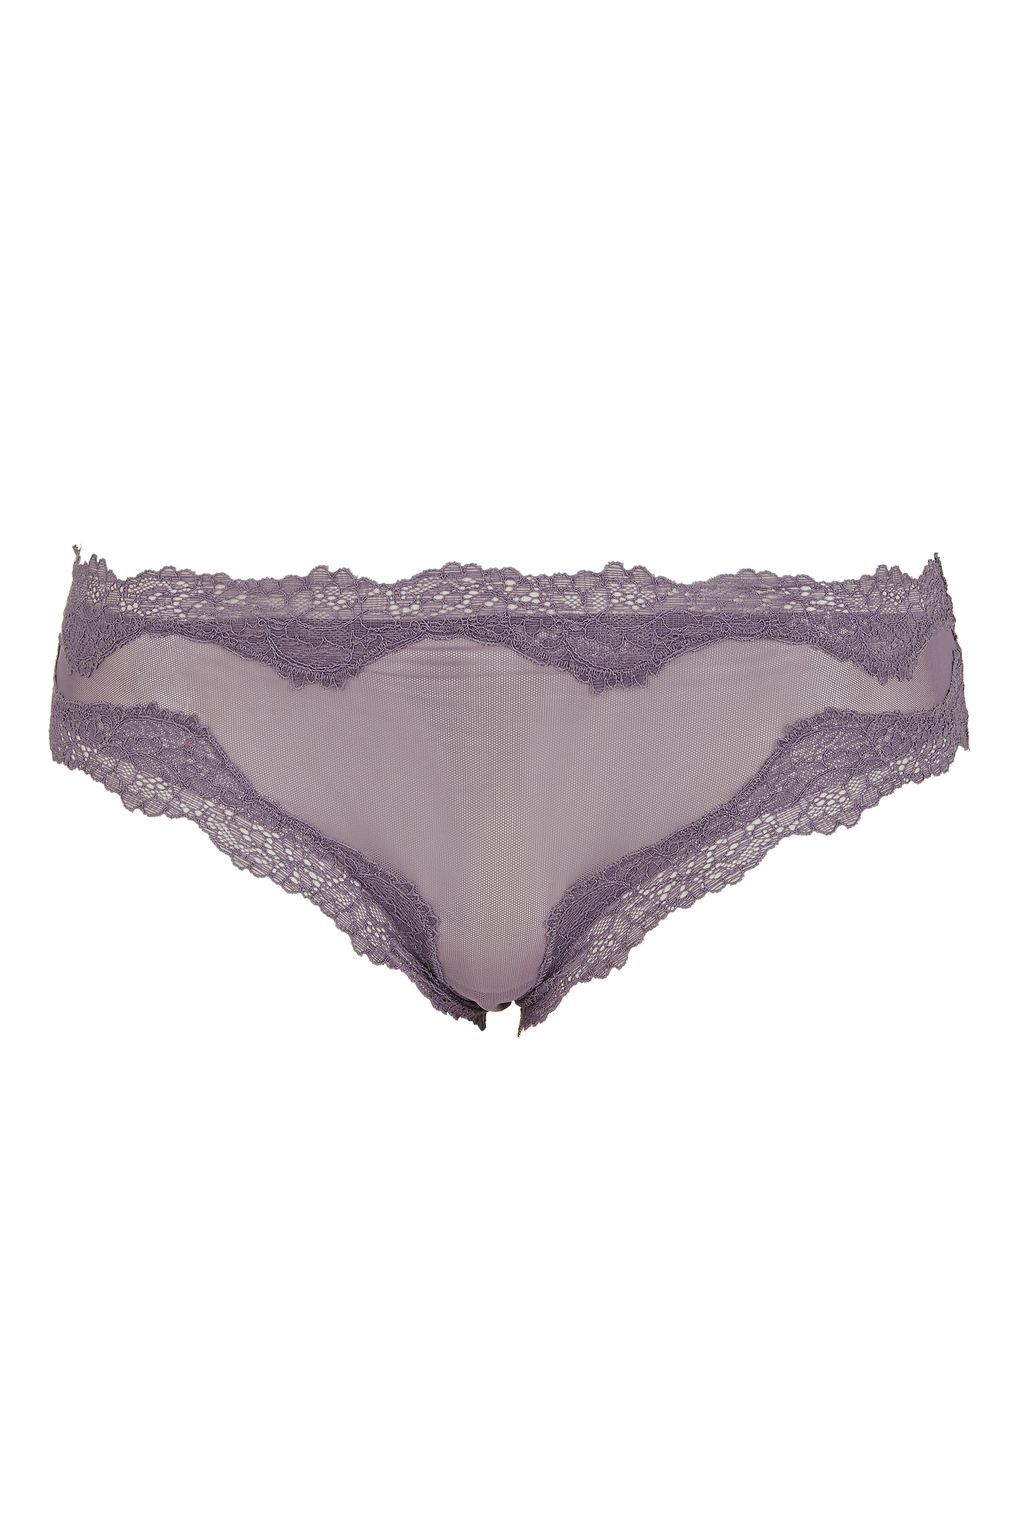 Mesh French Knickers - Lingerie - Clothing - Topshop USA